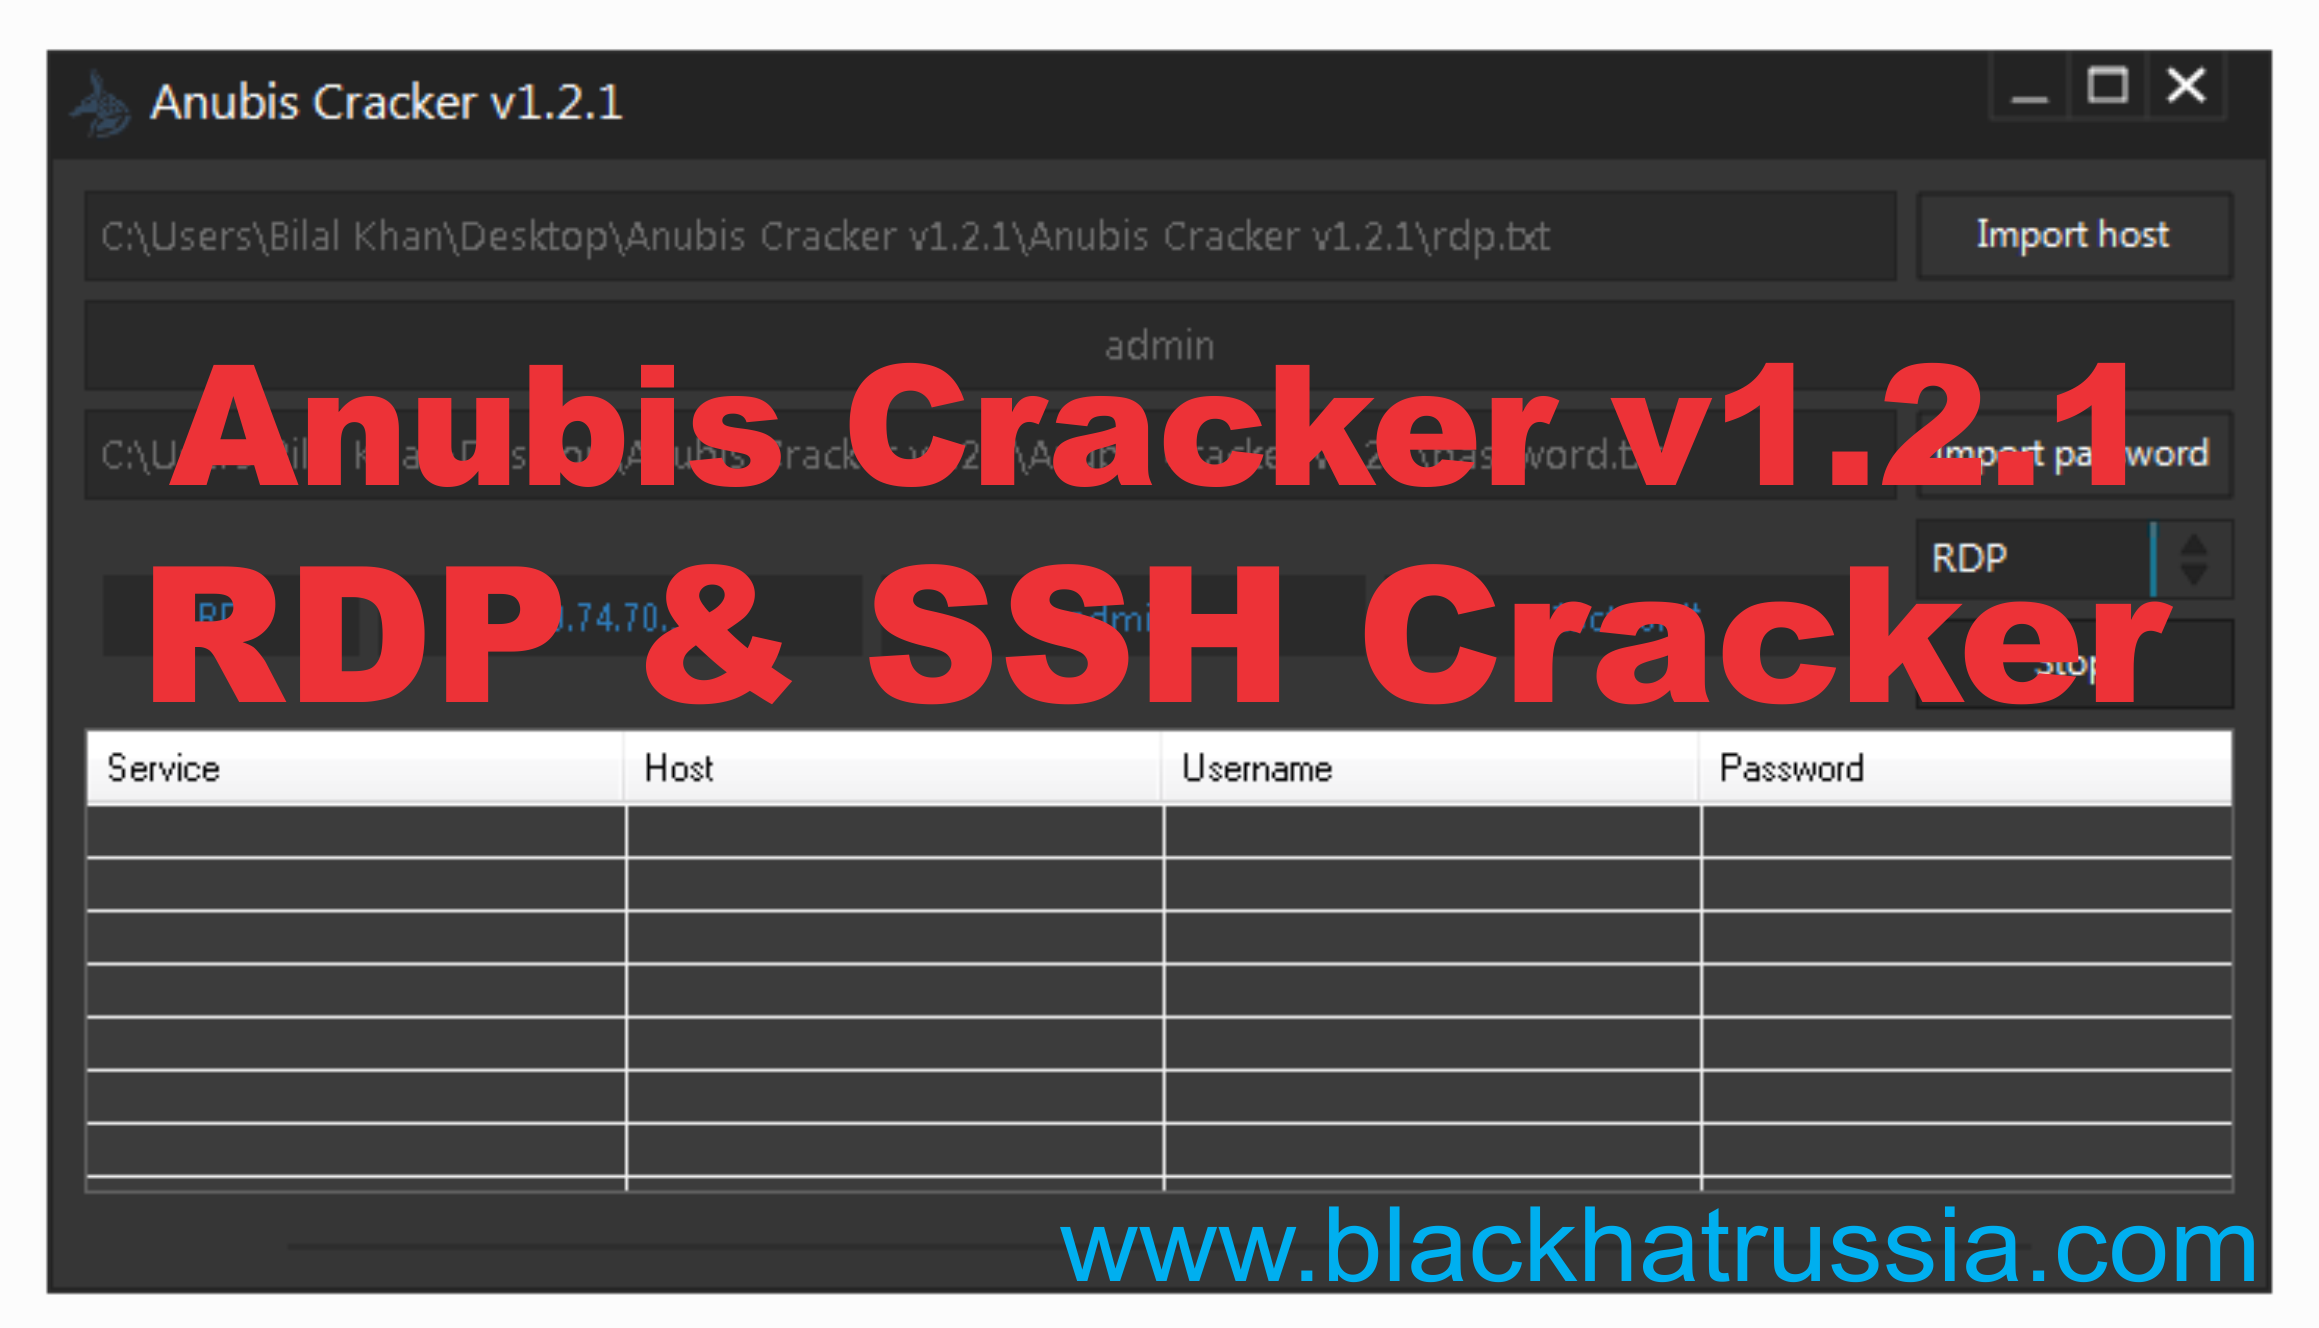 ANUBIS CRACKER V.1.2.1 BRUTE FORCE SSH and RDP